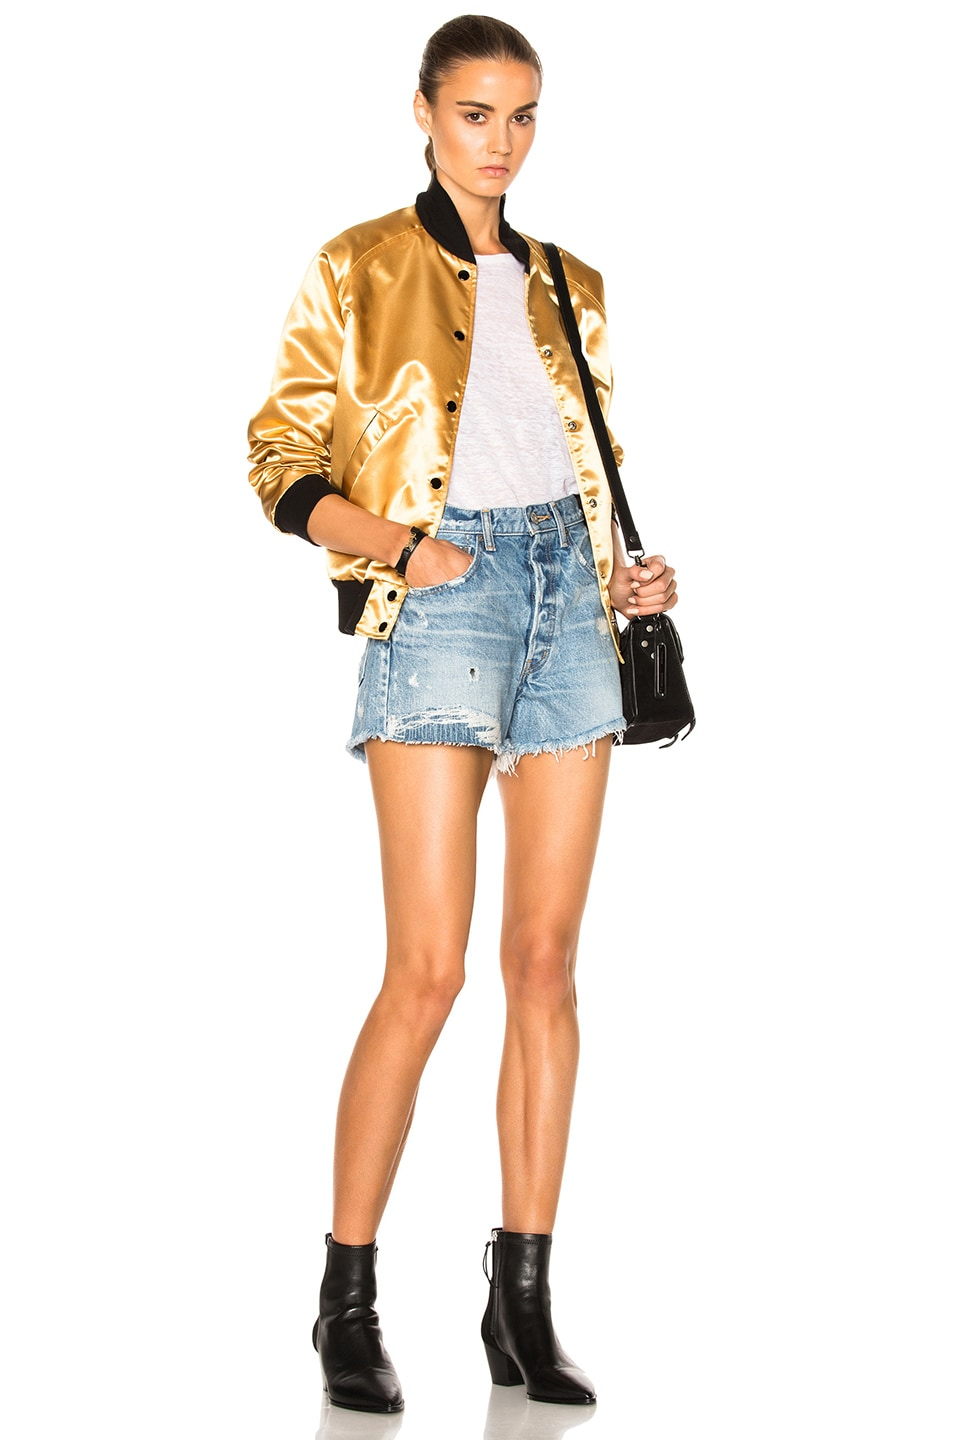 Image 7 of Catherine Fulmer Bowie Bomber Jacket in Gold